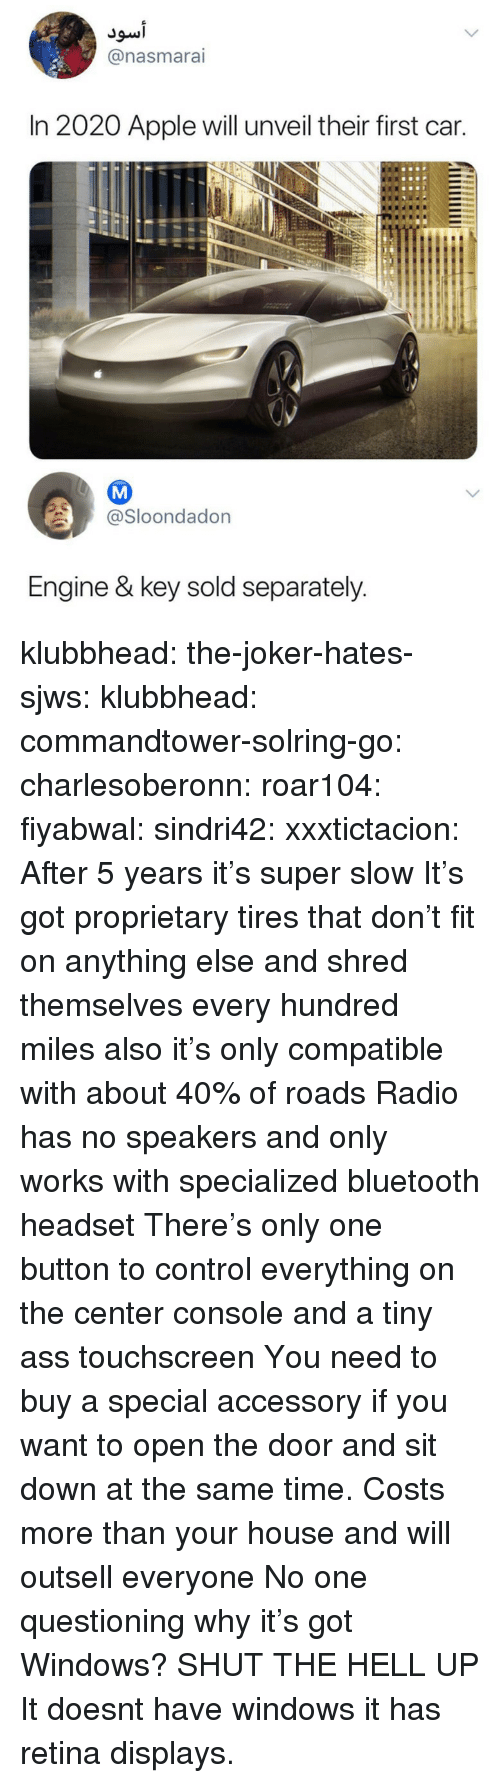 proprietary: @nasmarai  In 2020 Apple will unveil their first car.  @Sloondadon  Engine & key sold separately klubbhead:  the-joker-hates-sjws:   klubbhead:  commandtower-solring-go:  charlesoberonn:  roar104:  fiyabwal:   sindri42:  xxxtictacion: After 5 years it's super slow  It's got proprietary tires that don't fit on anything else and shred themselves every hundred miles also it's only compatible with about 40% of roads   Radio has no speakers and only works with specialized bluetooth headset   There's only one button to control everything on the center console and a tiny ass touchscreen  You need to buy a special accessory if you want to open the door and sit down at the same time.   Costs more than your house and will outsell everyone   No one questioning why it's got Windows?   SHUT THE HELL UP   It doesnt have windows it has retina displays.